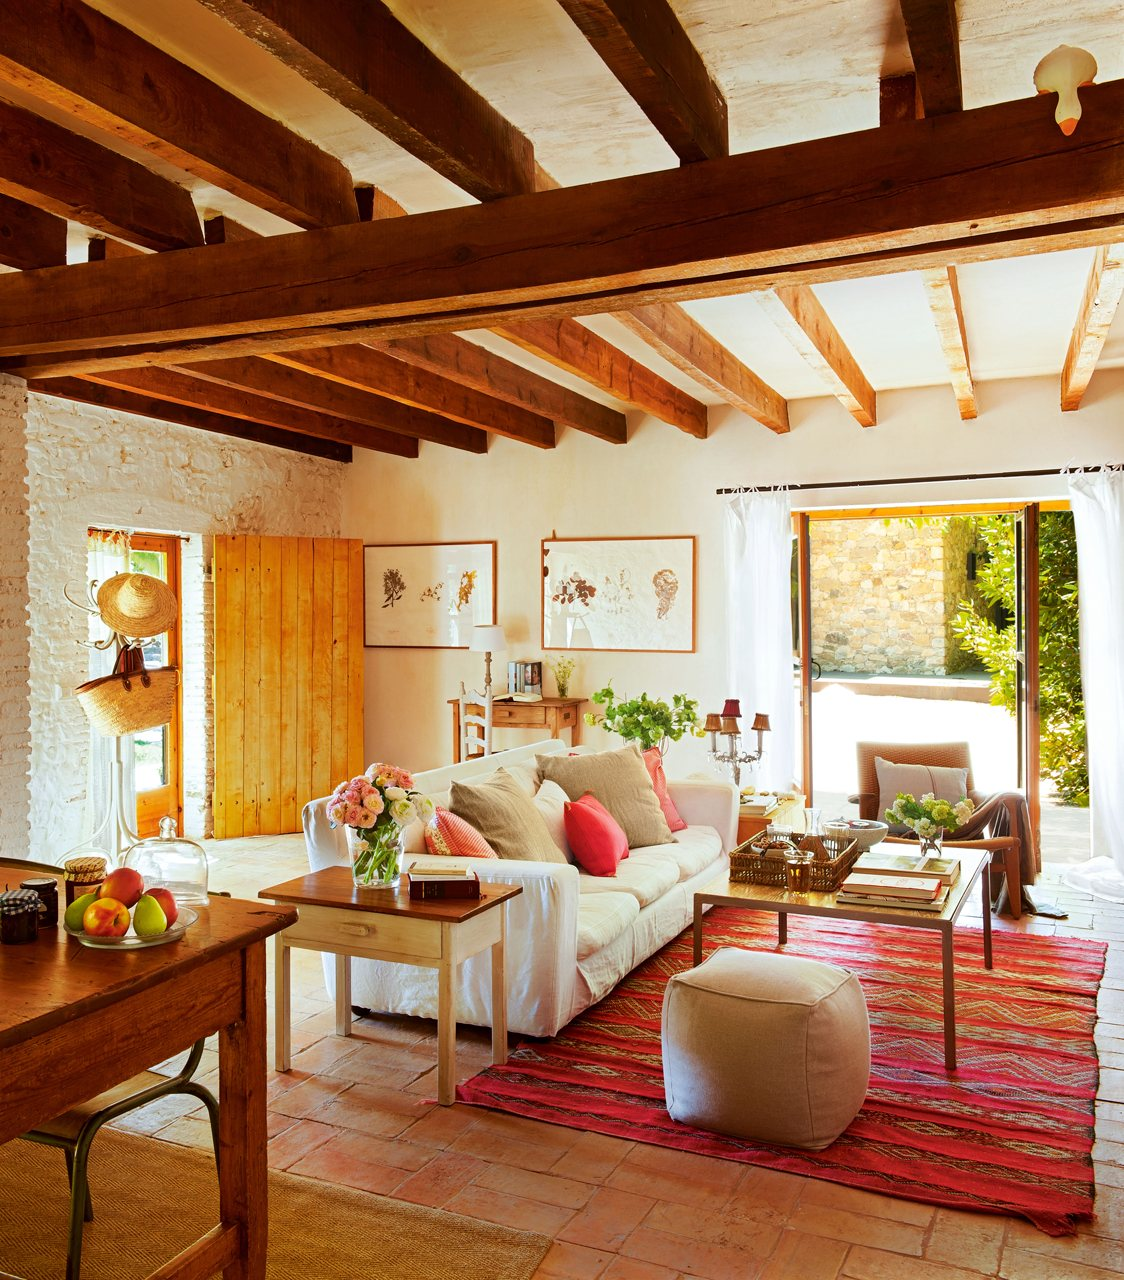 a joyful cottage living large in small spaces baix